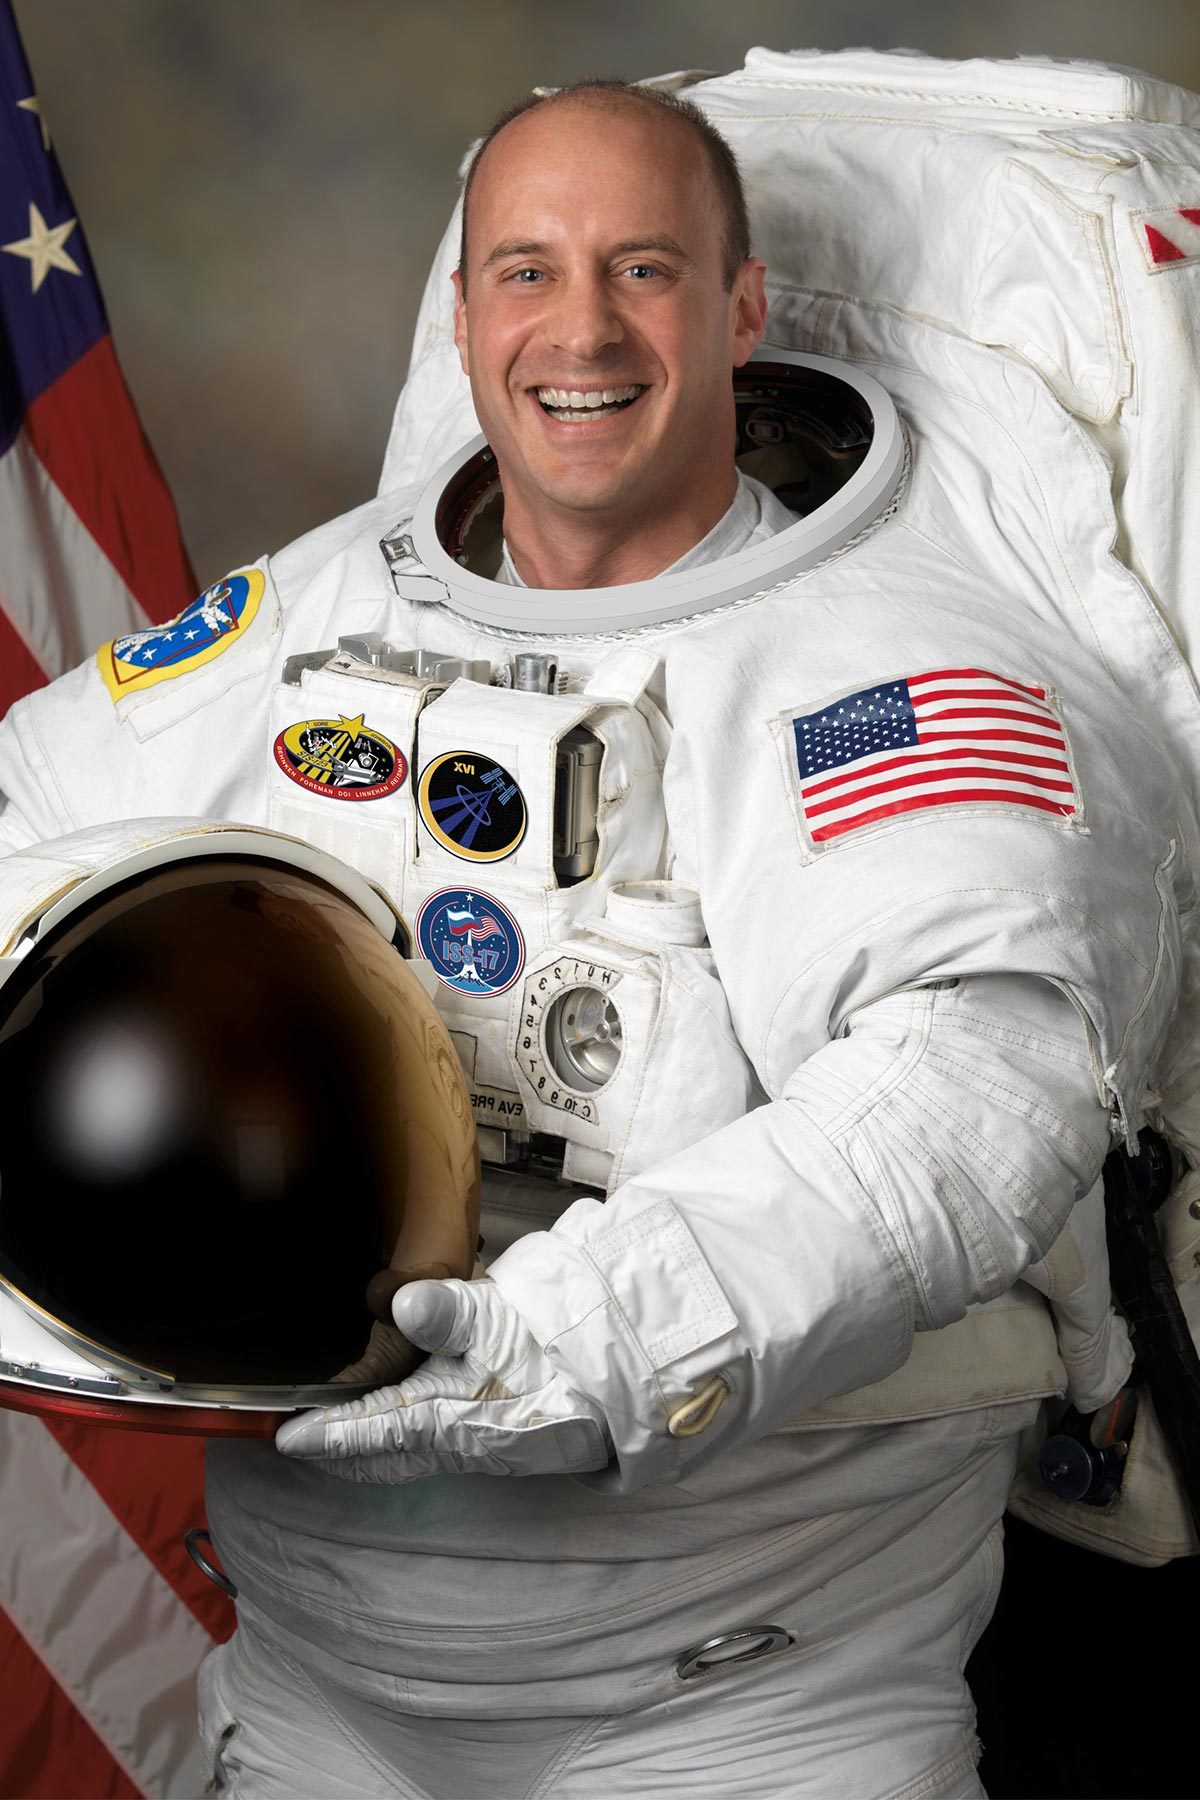 Garrett Reisman, joining the USC Department of Astronautical Engineering